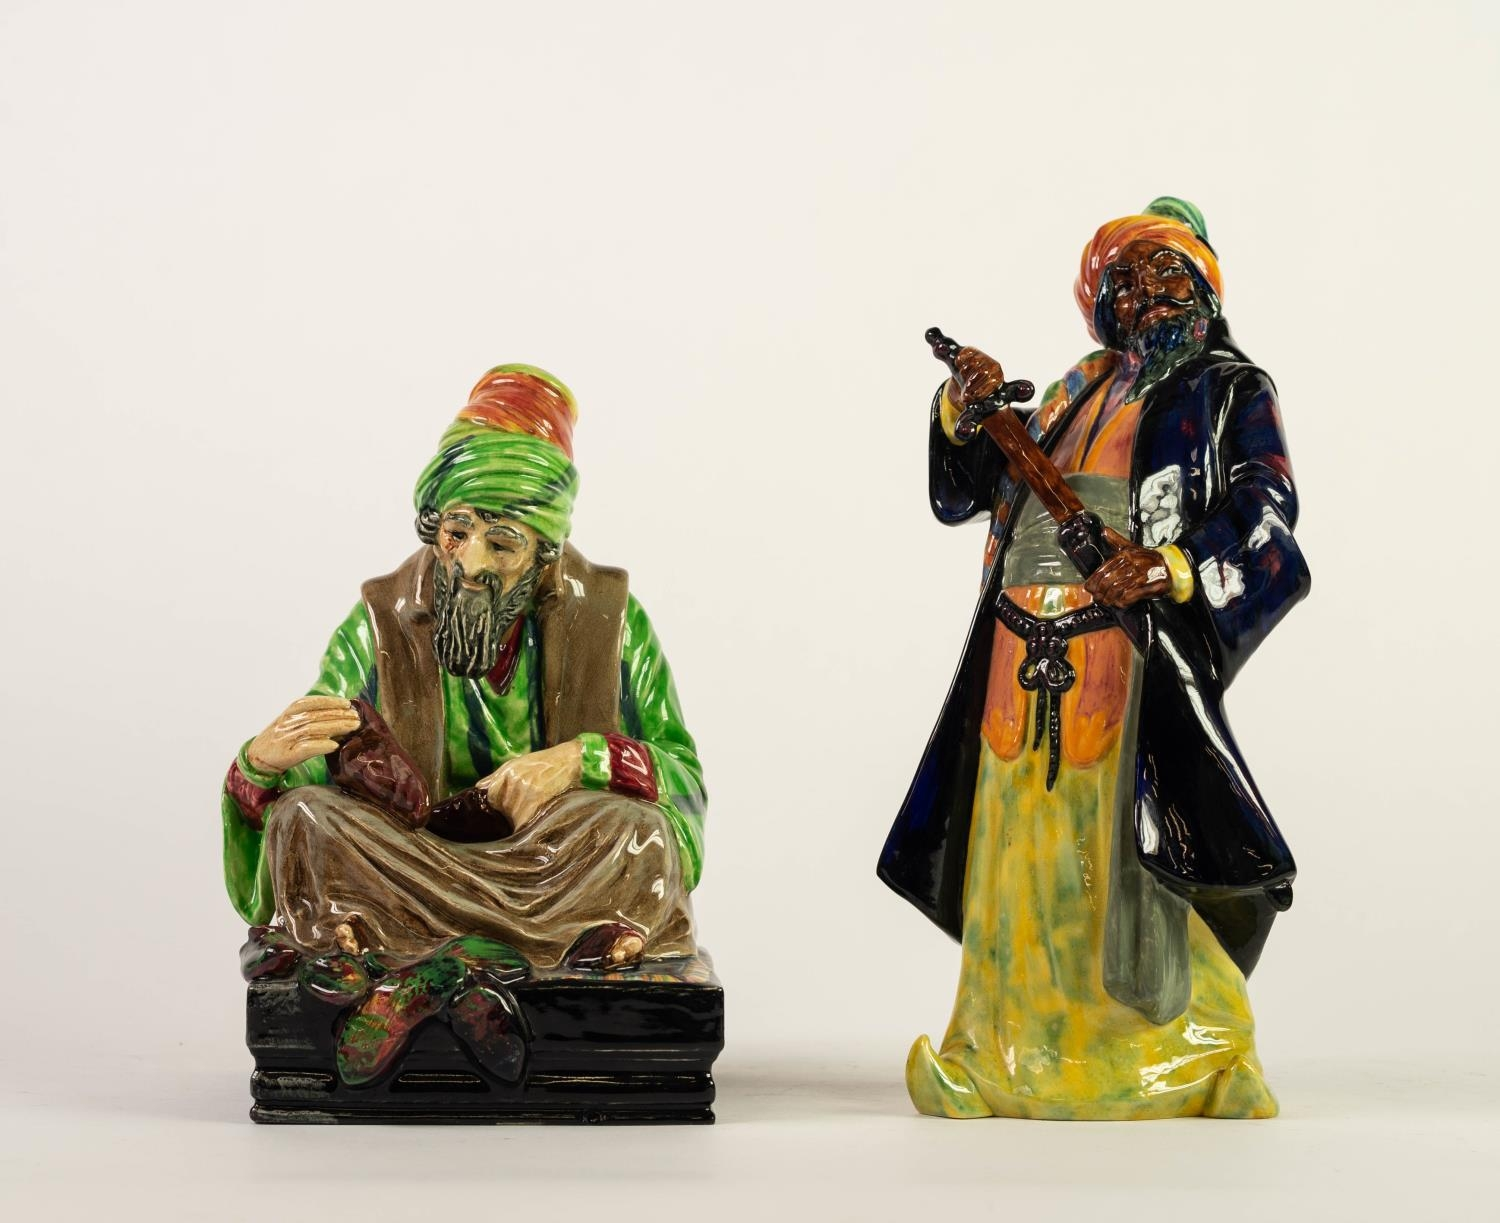 TWO ROYAL DOULTON CHINA FIGURES, ?The Cobbler?, HN1706, 8? (20.3cm) high, and ?Blue Beard?,